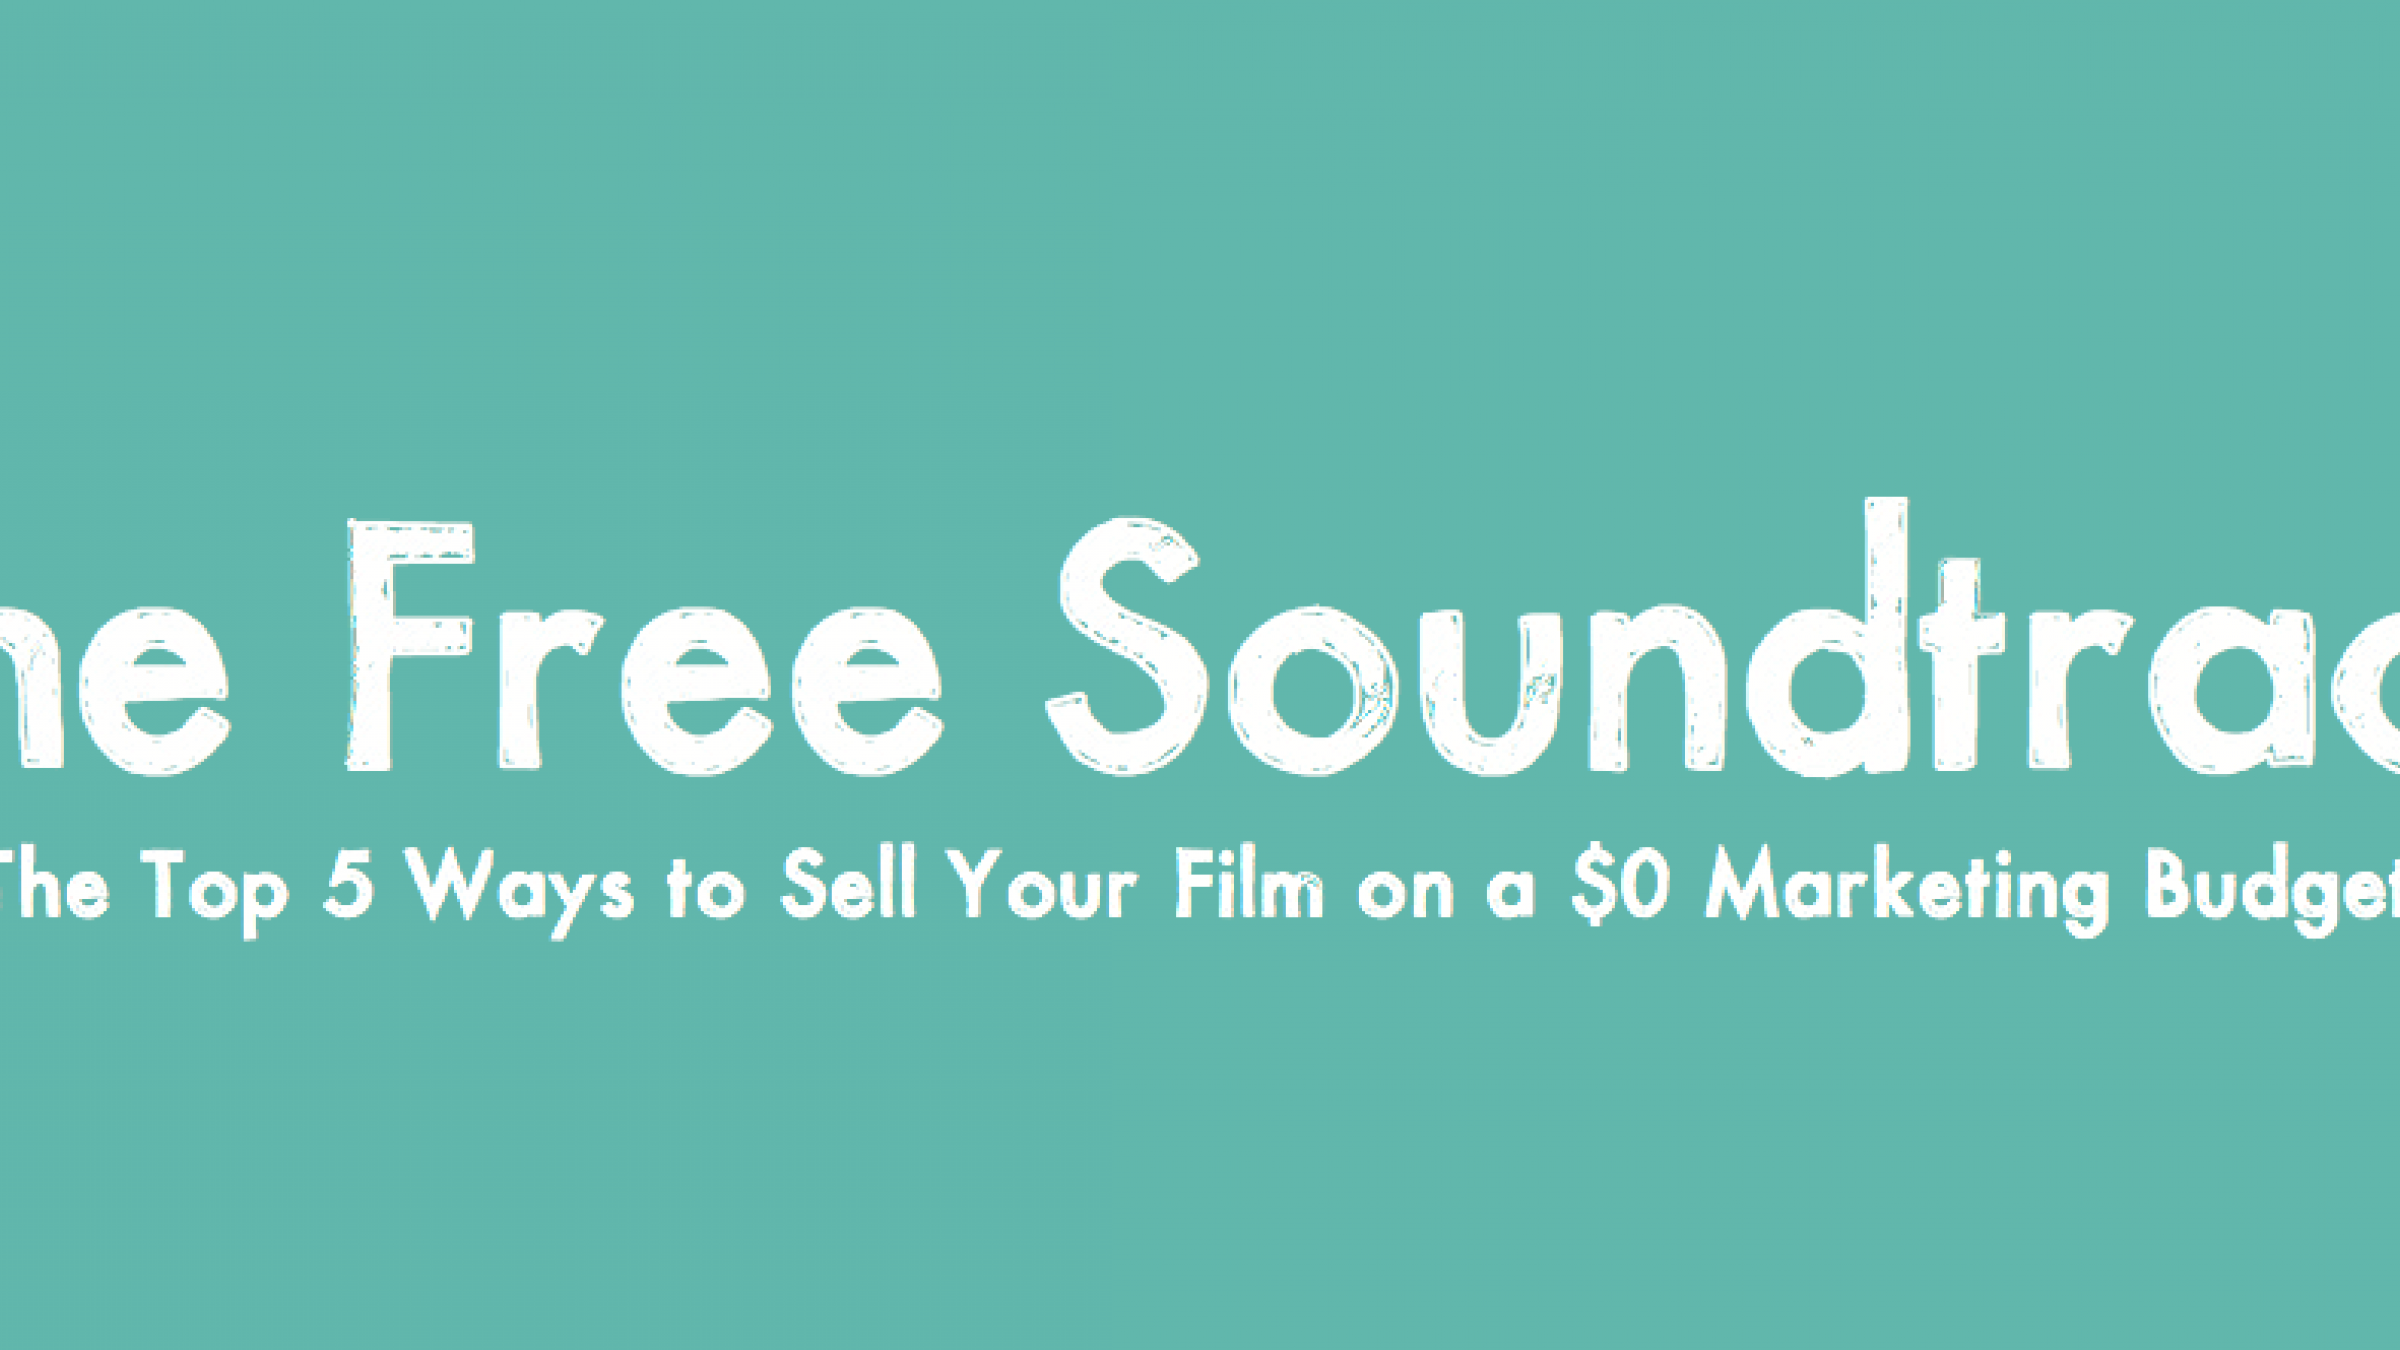 Need to Sell Your Film on a $0 Budget? This Free eBook Can Help Show You How